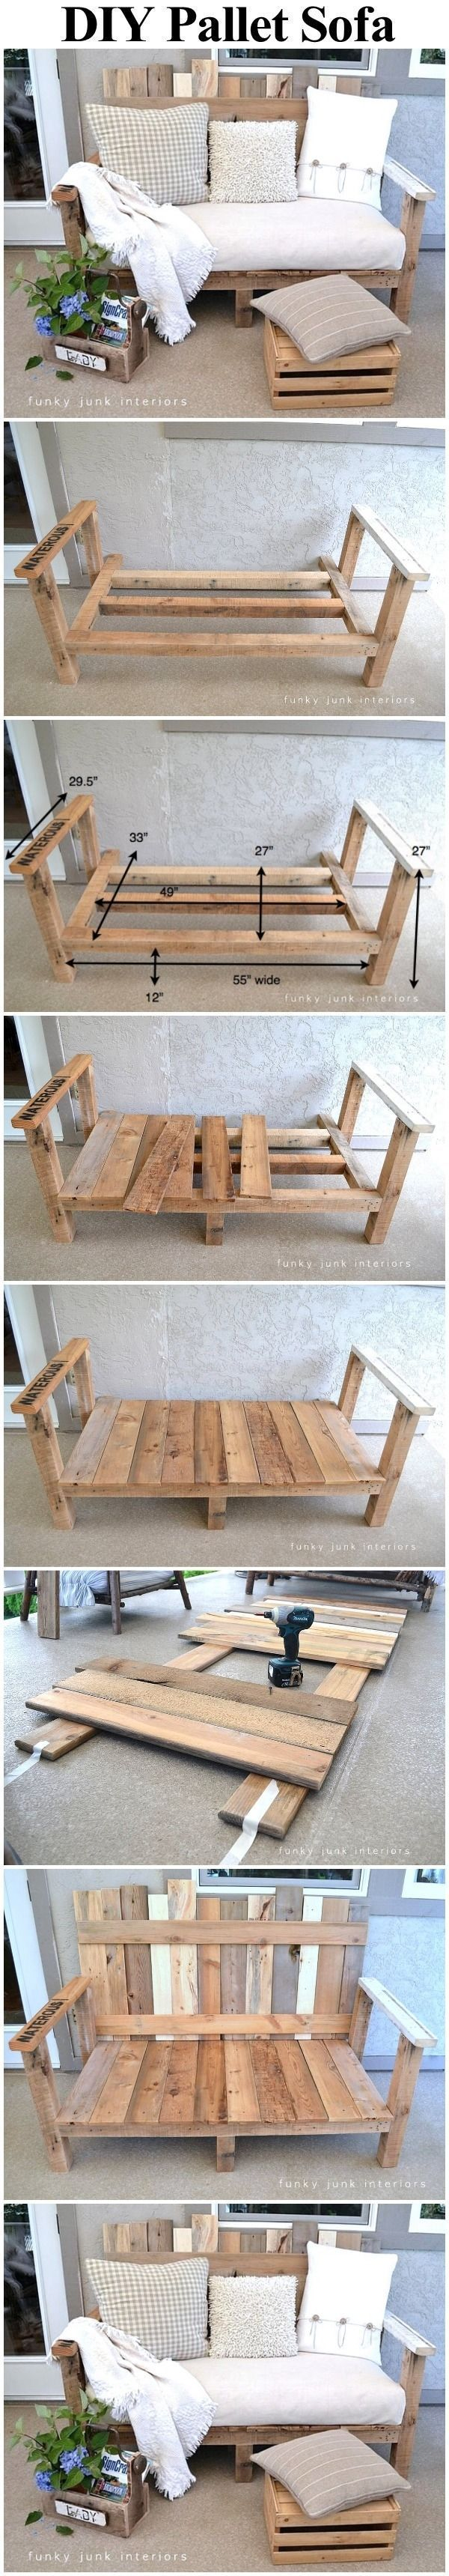 This would be so cute on the back patio!